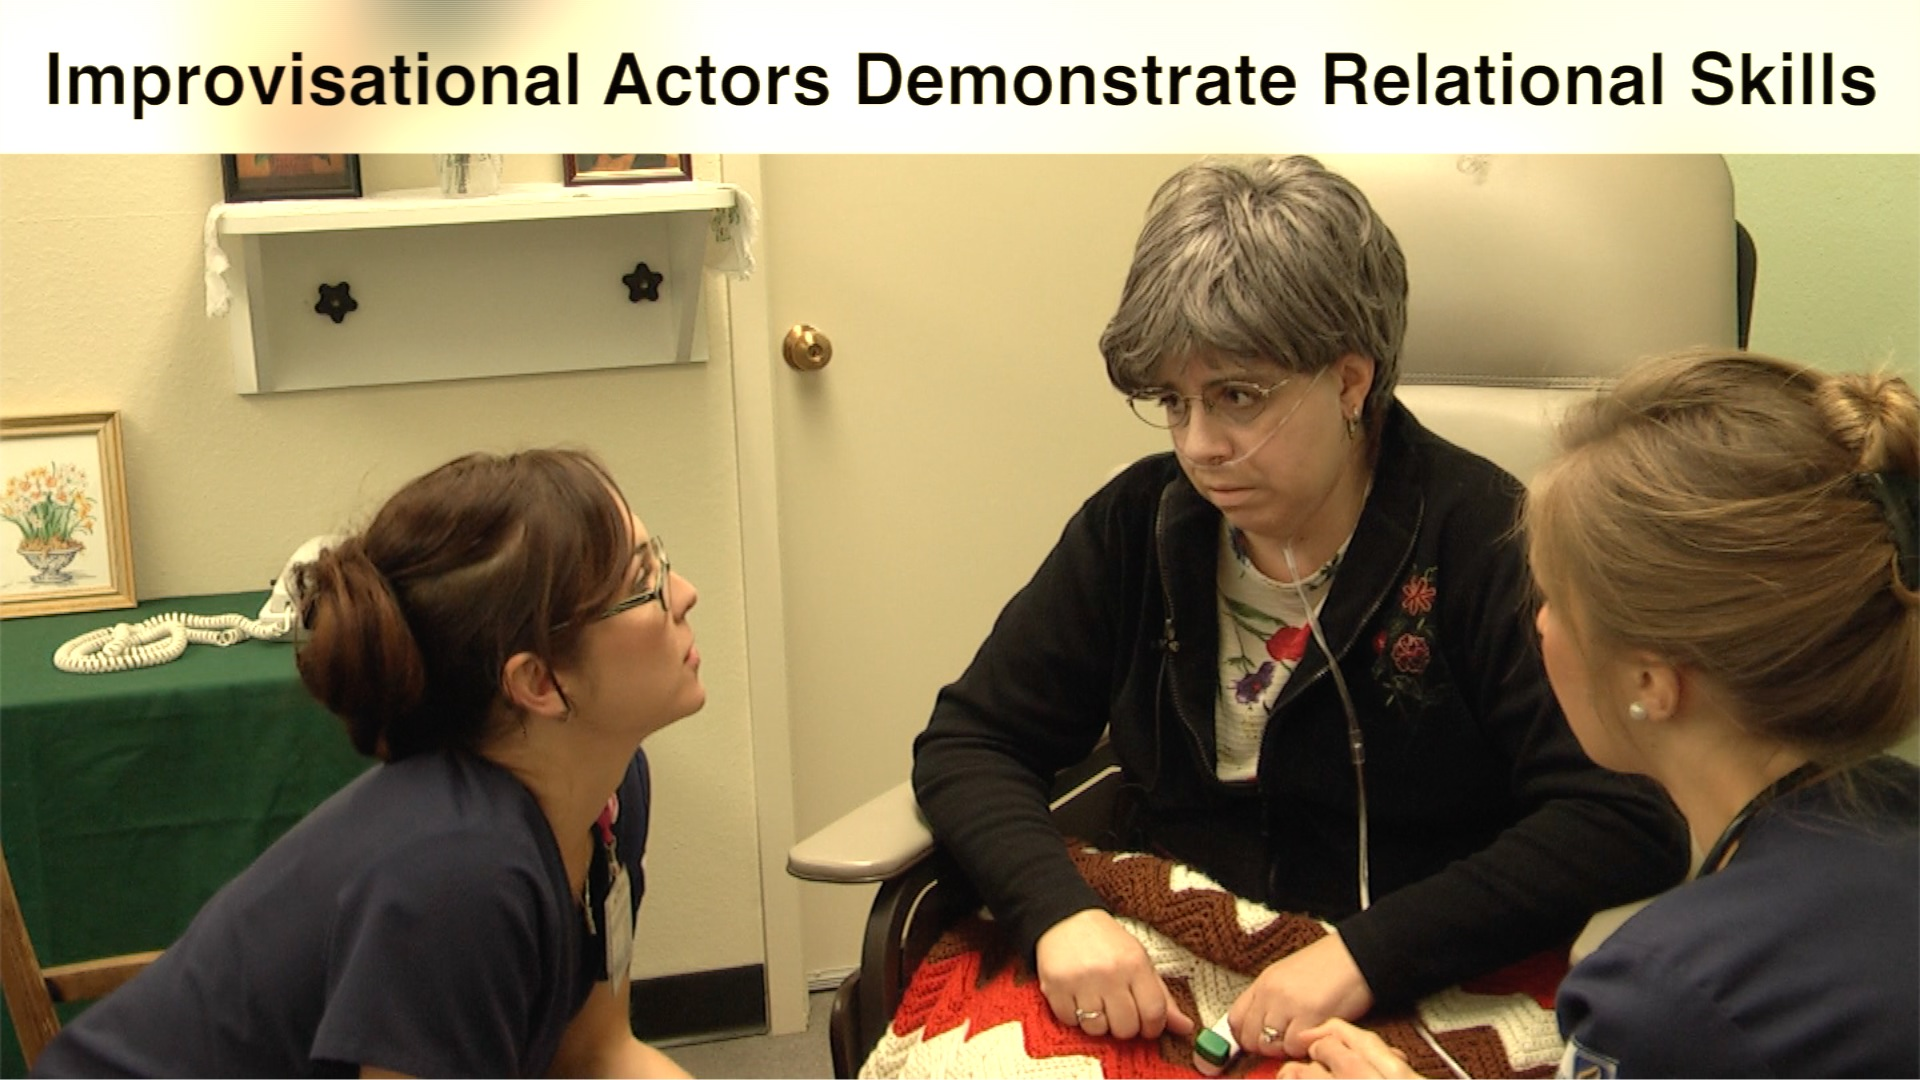 Students interact with actor in a simulation